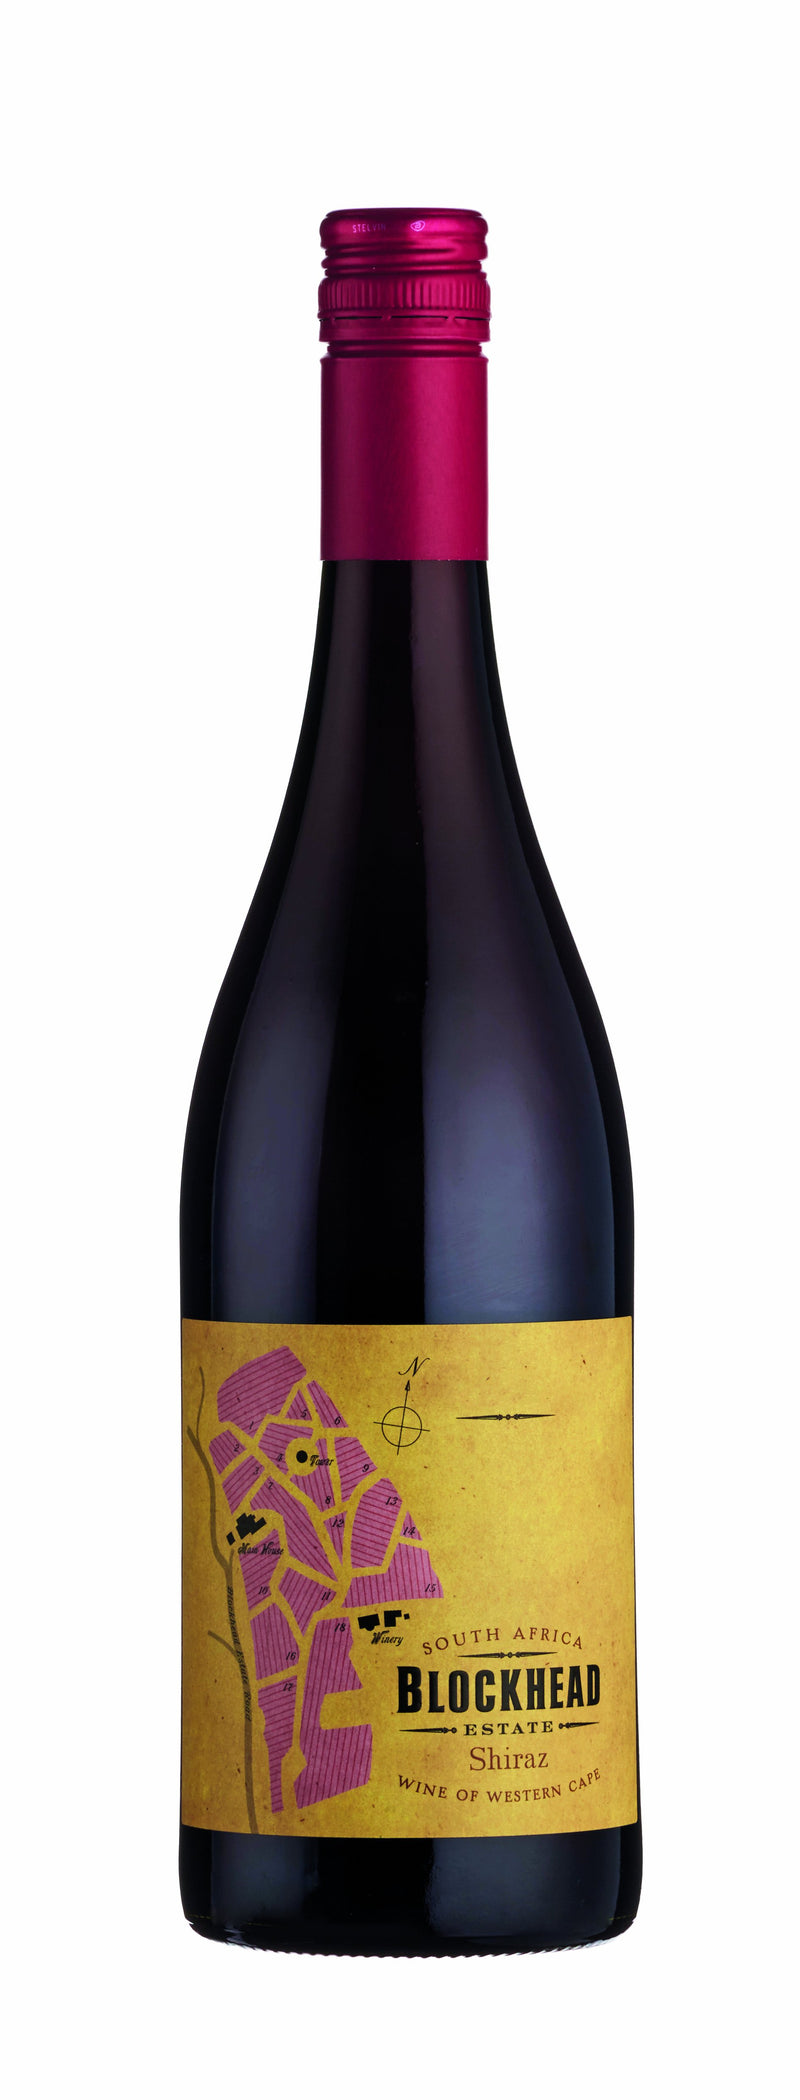 Blockhead Syrah, 2018, Western Cape, South Africa - thedropstore.com